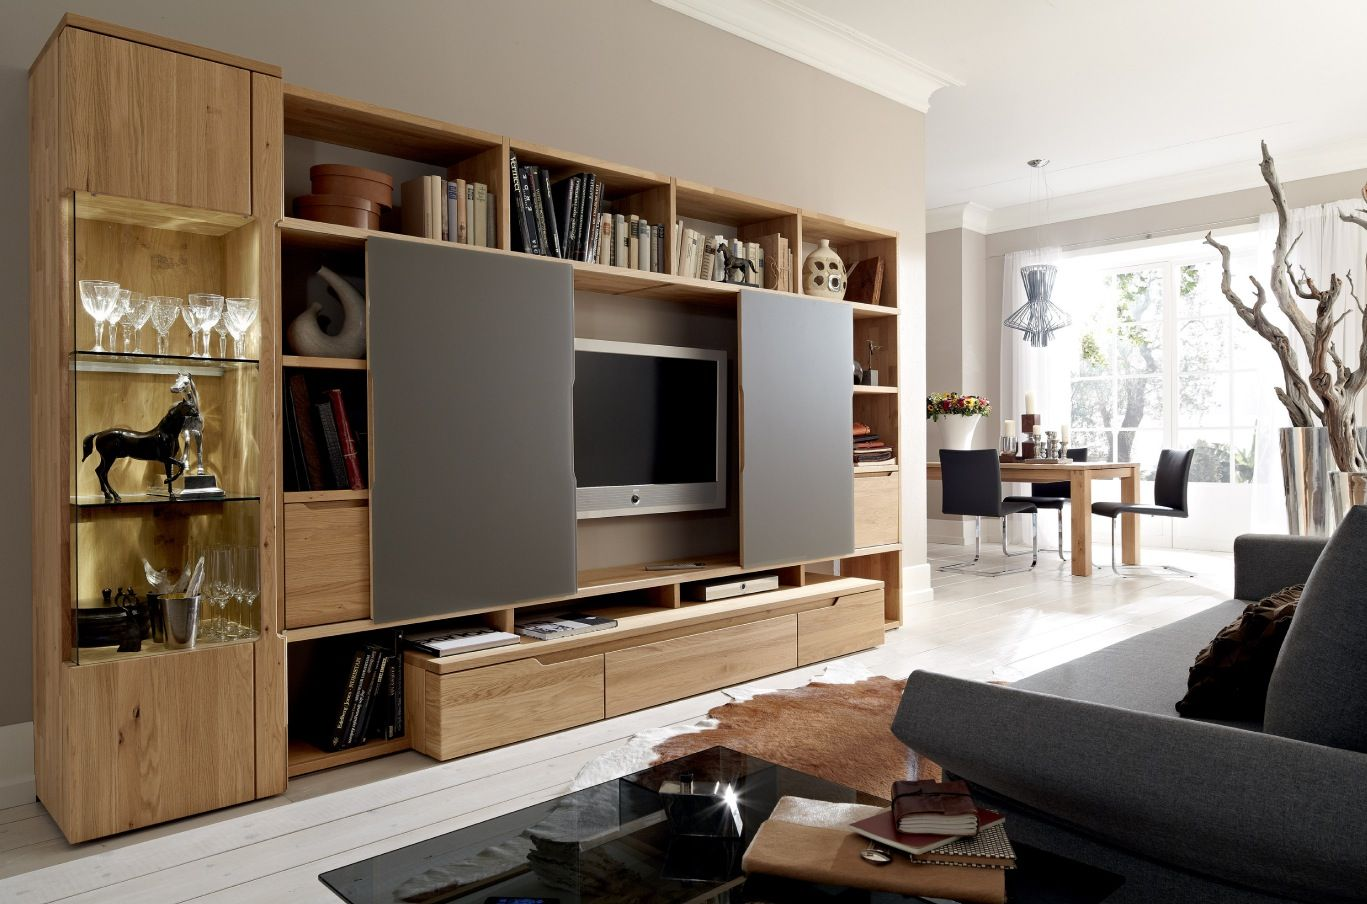 Living Room Entertainment Center Ideas entertainment center ideas | living room designs, light wood